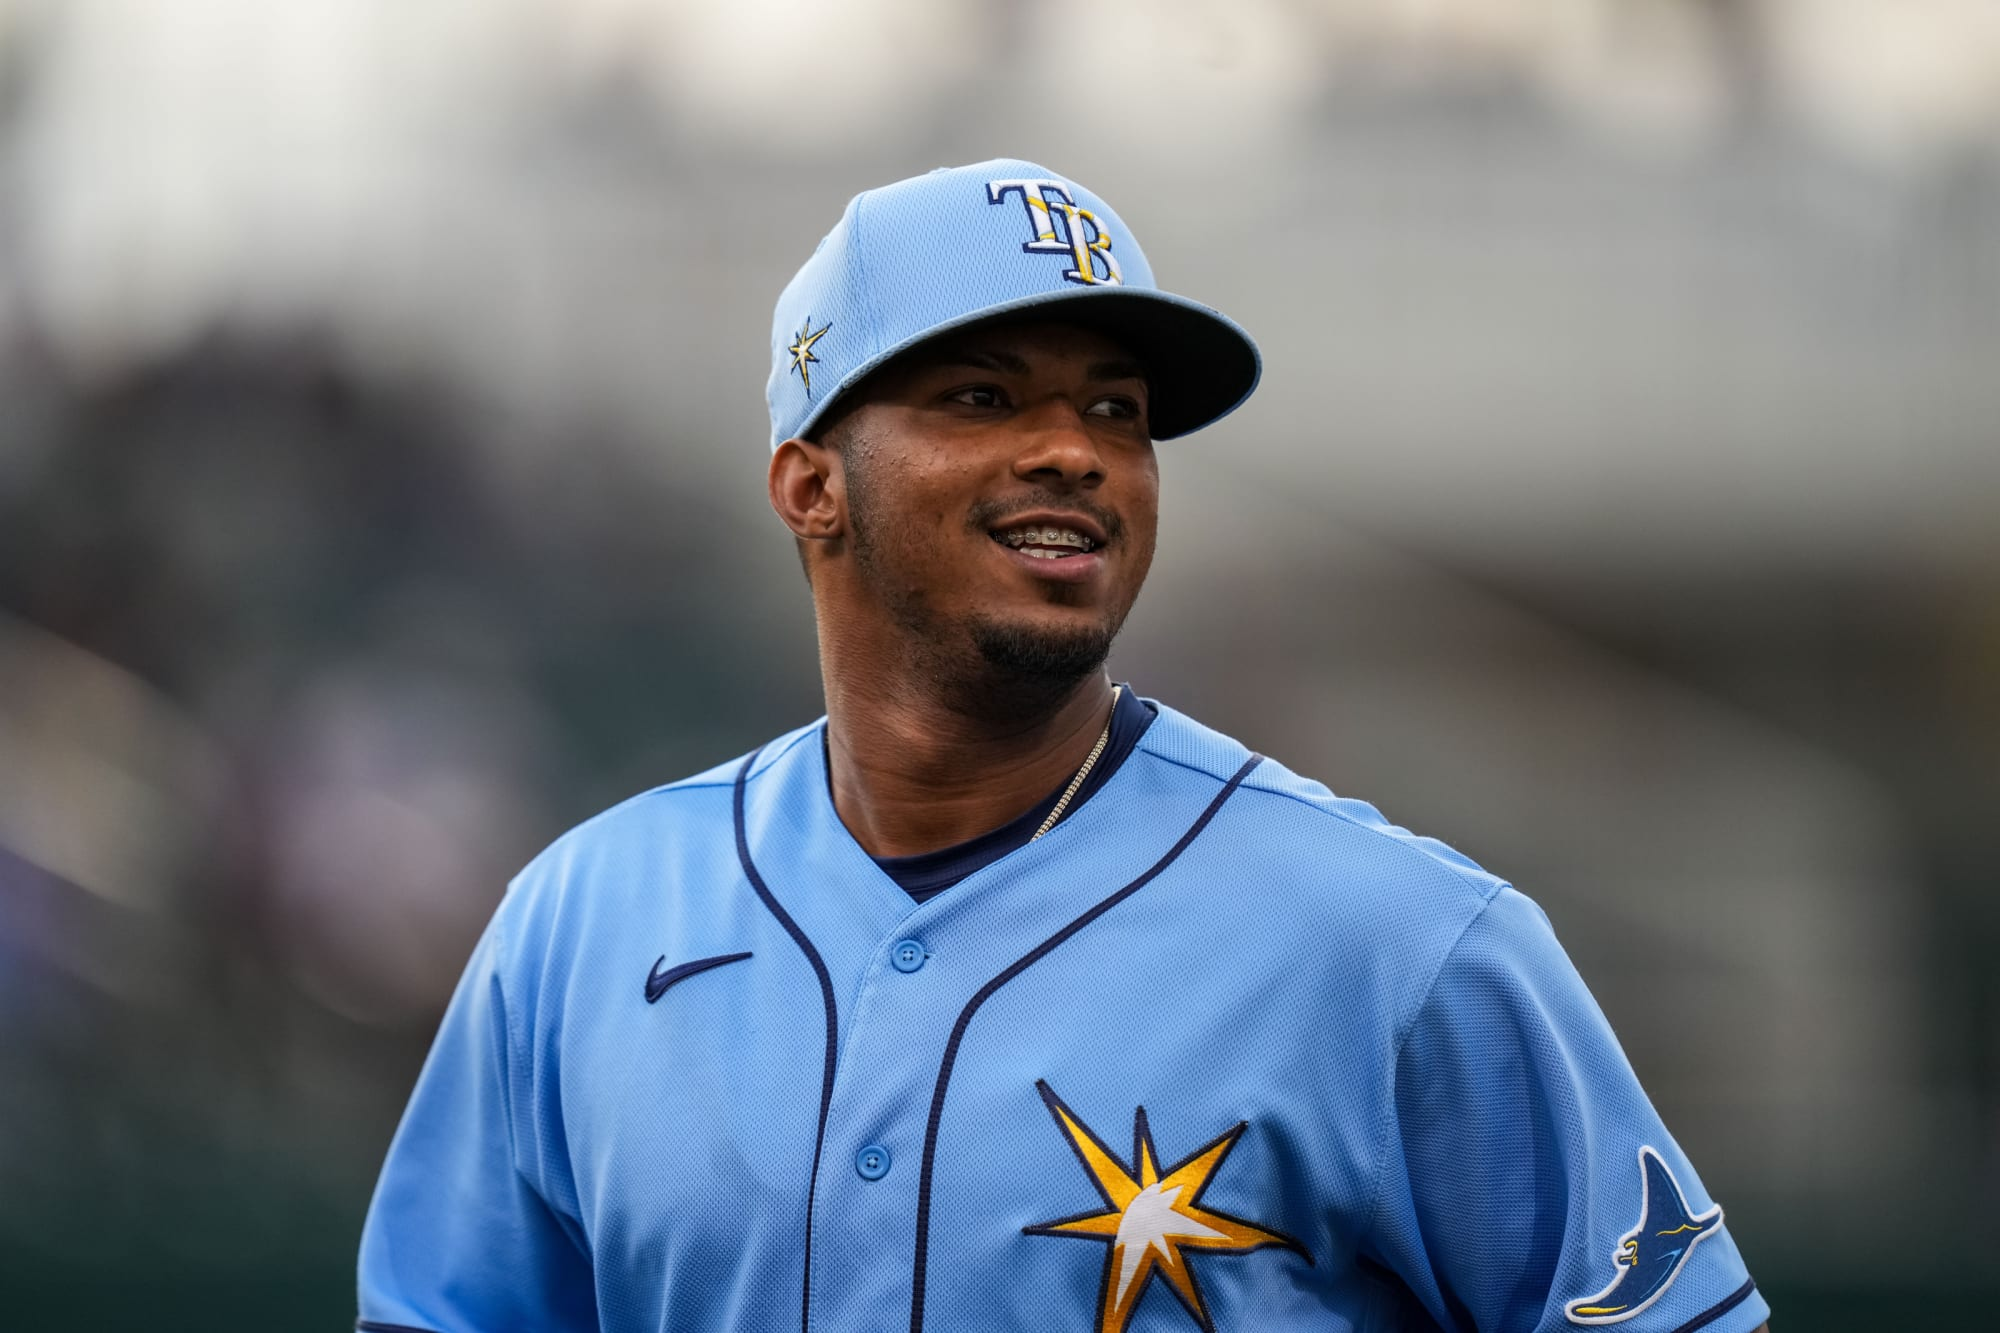 It's Wander Time: Tampa Bay Rays Call Up Prized Prospect Wander Franco